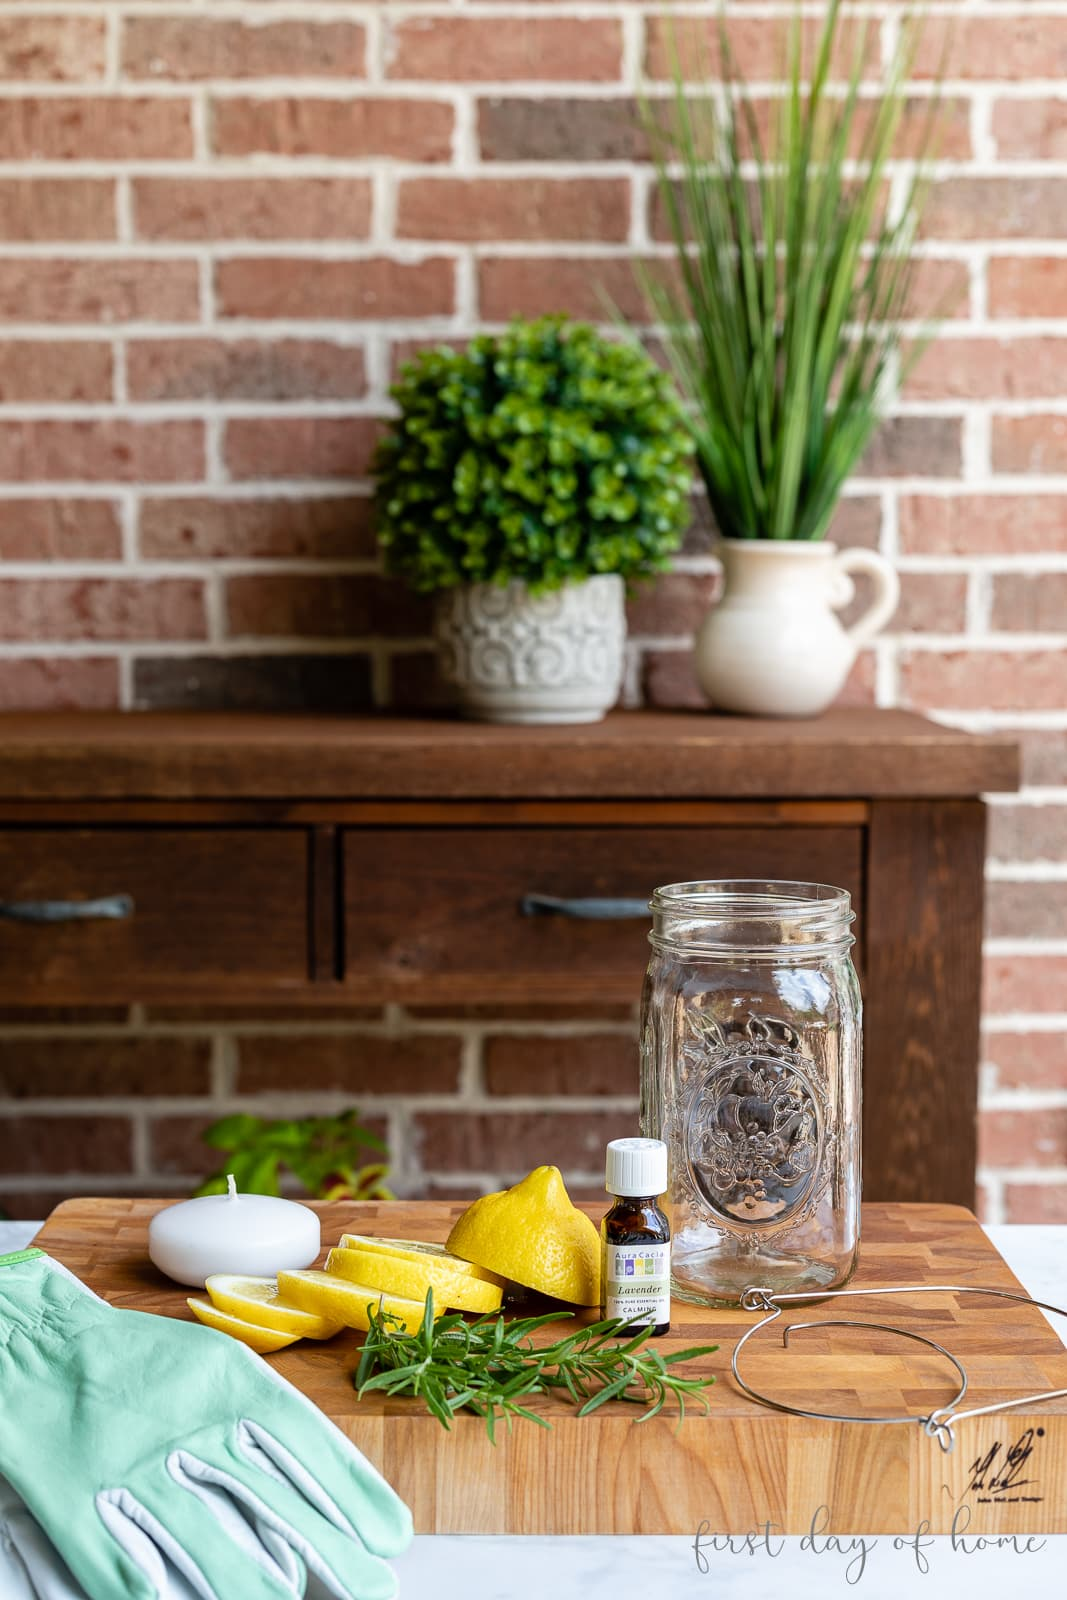 Mason jar luminary supplies with lemon slices, rosemary and essential oil